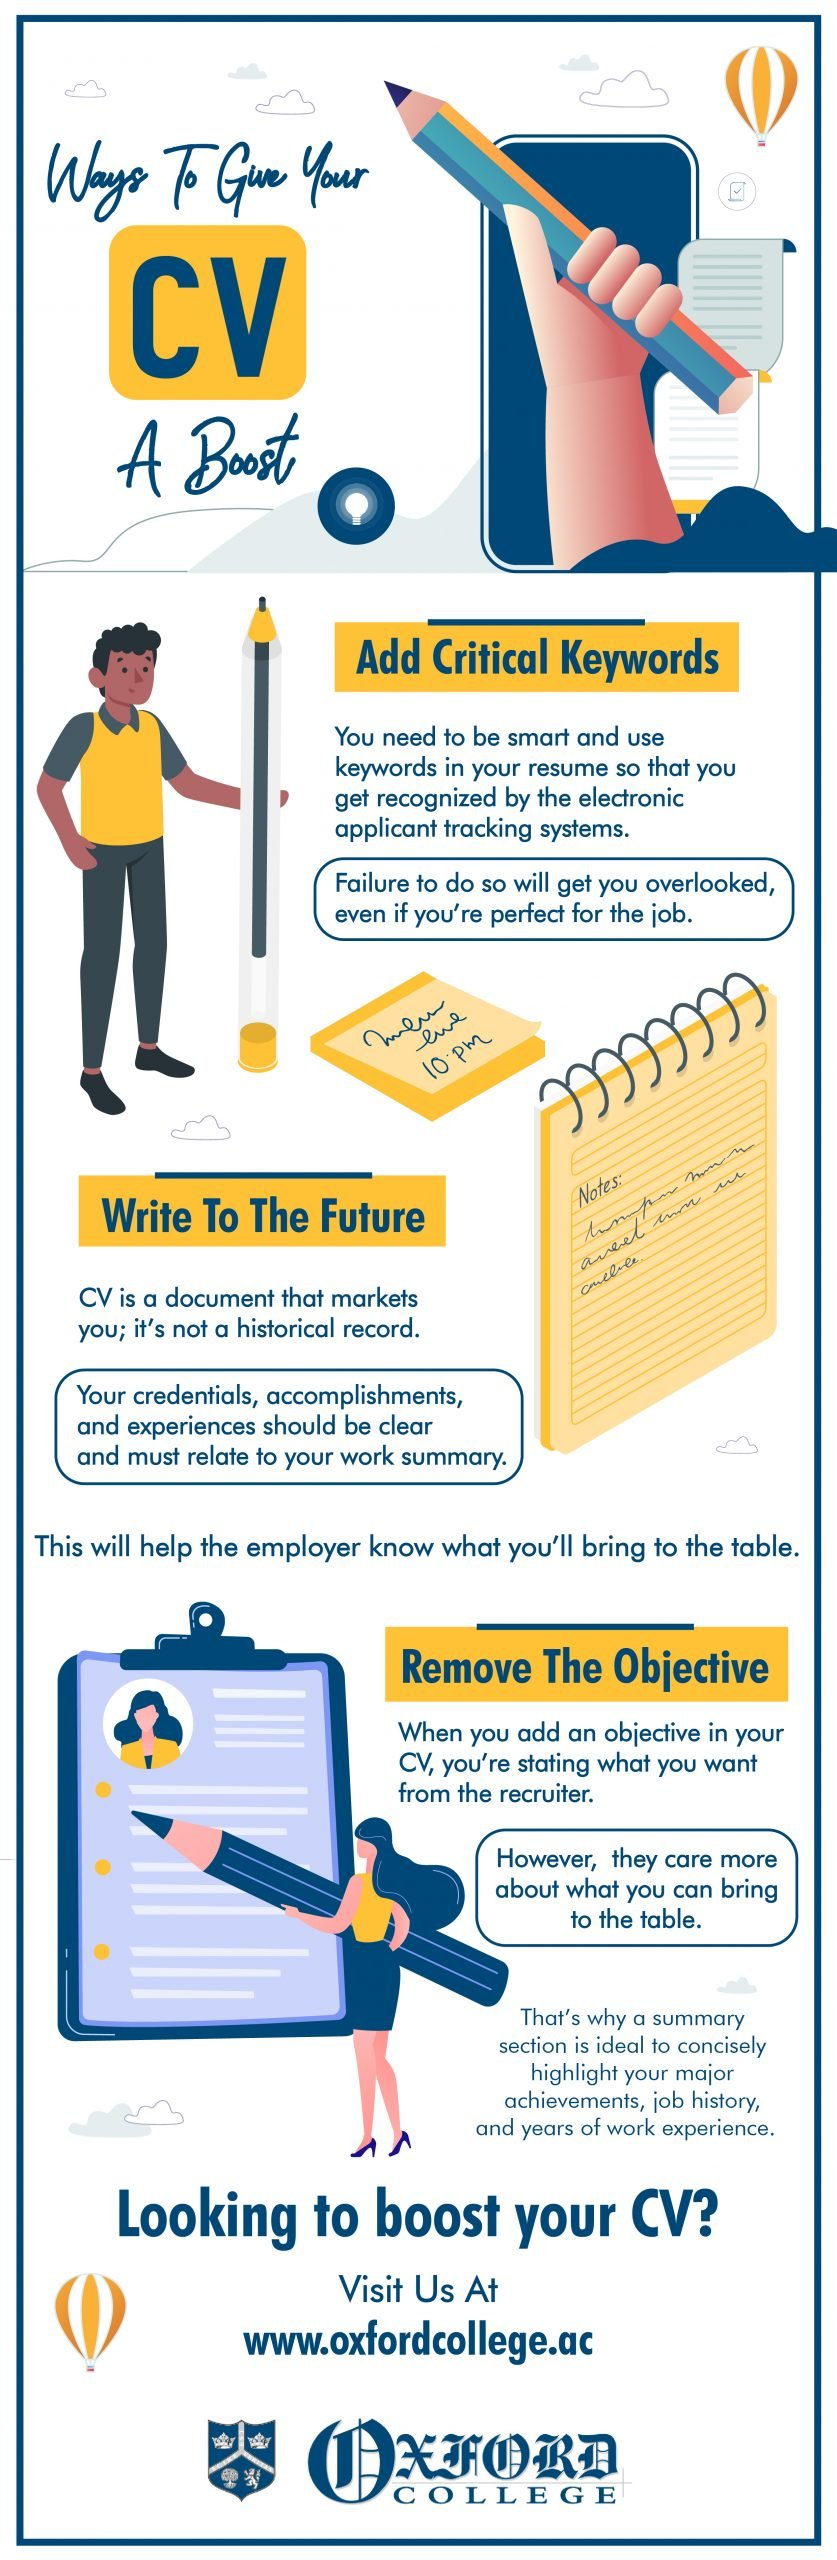 Ways to give your CV a boost